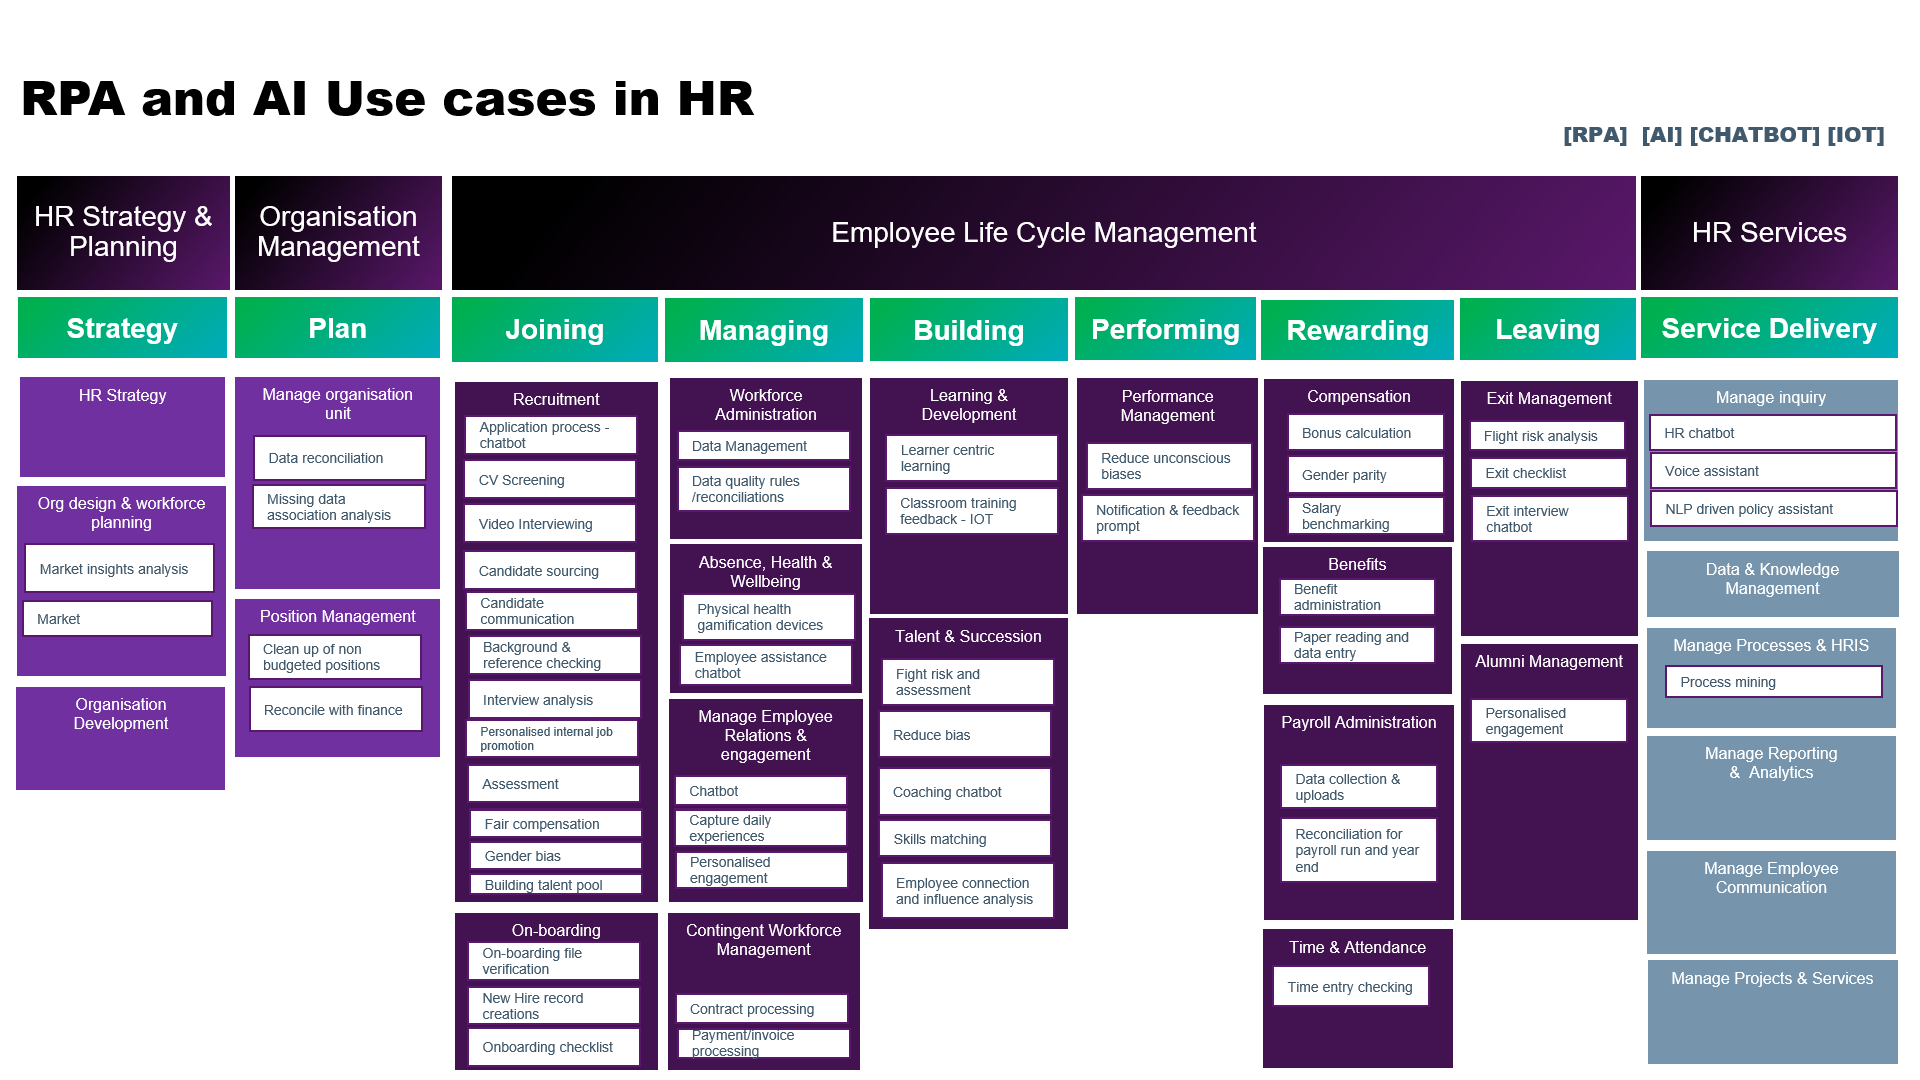 AI and RPA usecases in HR